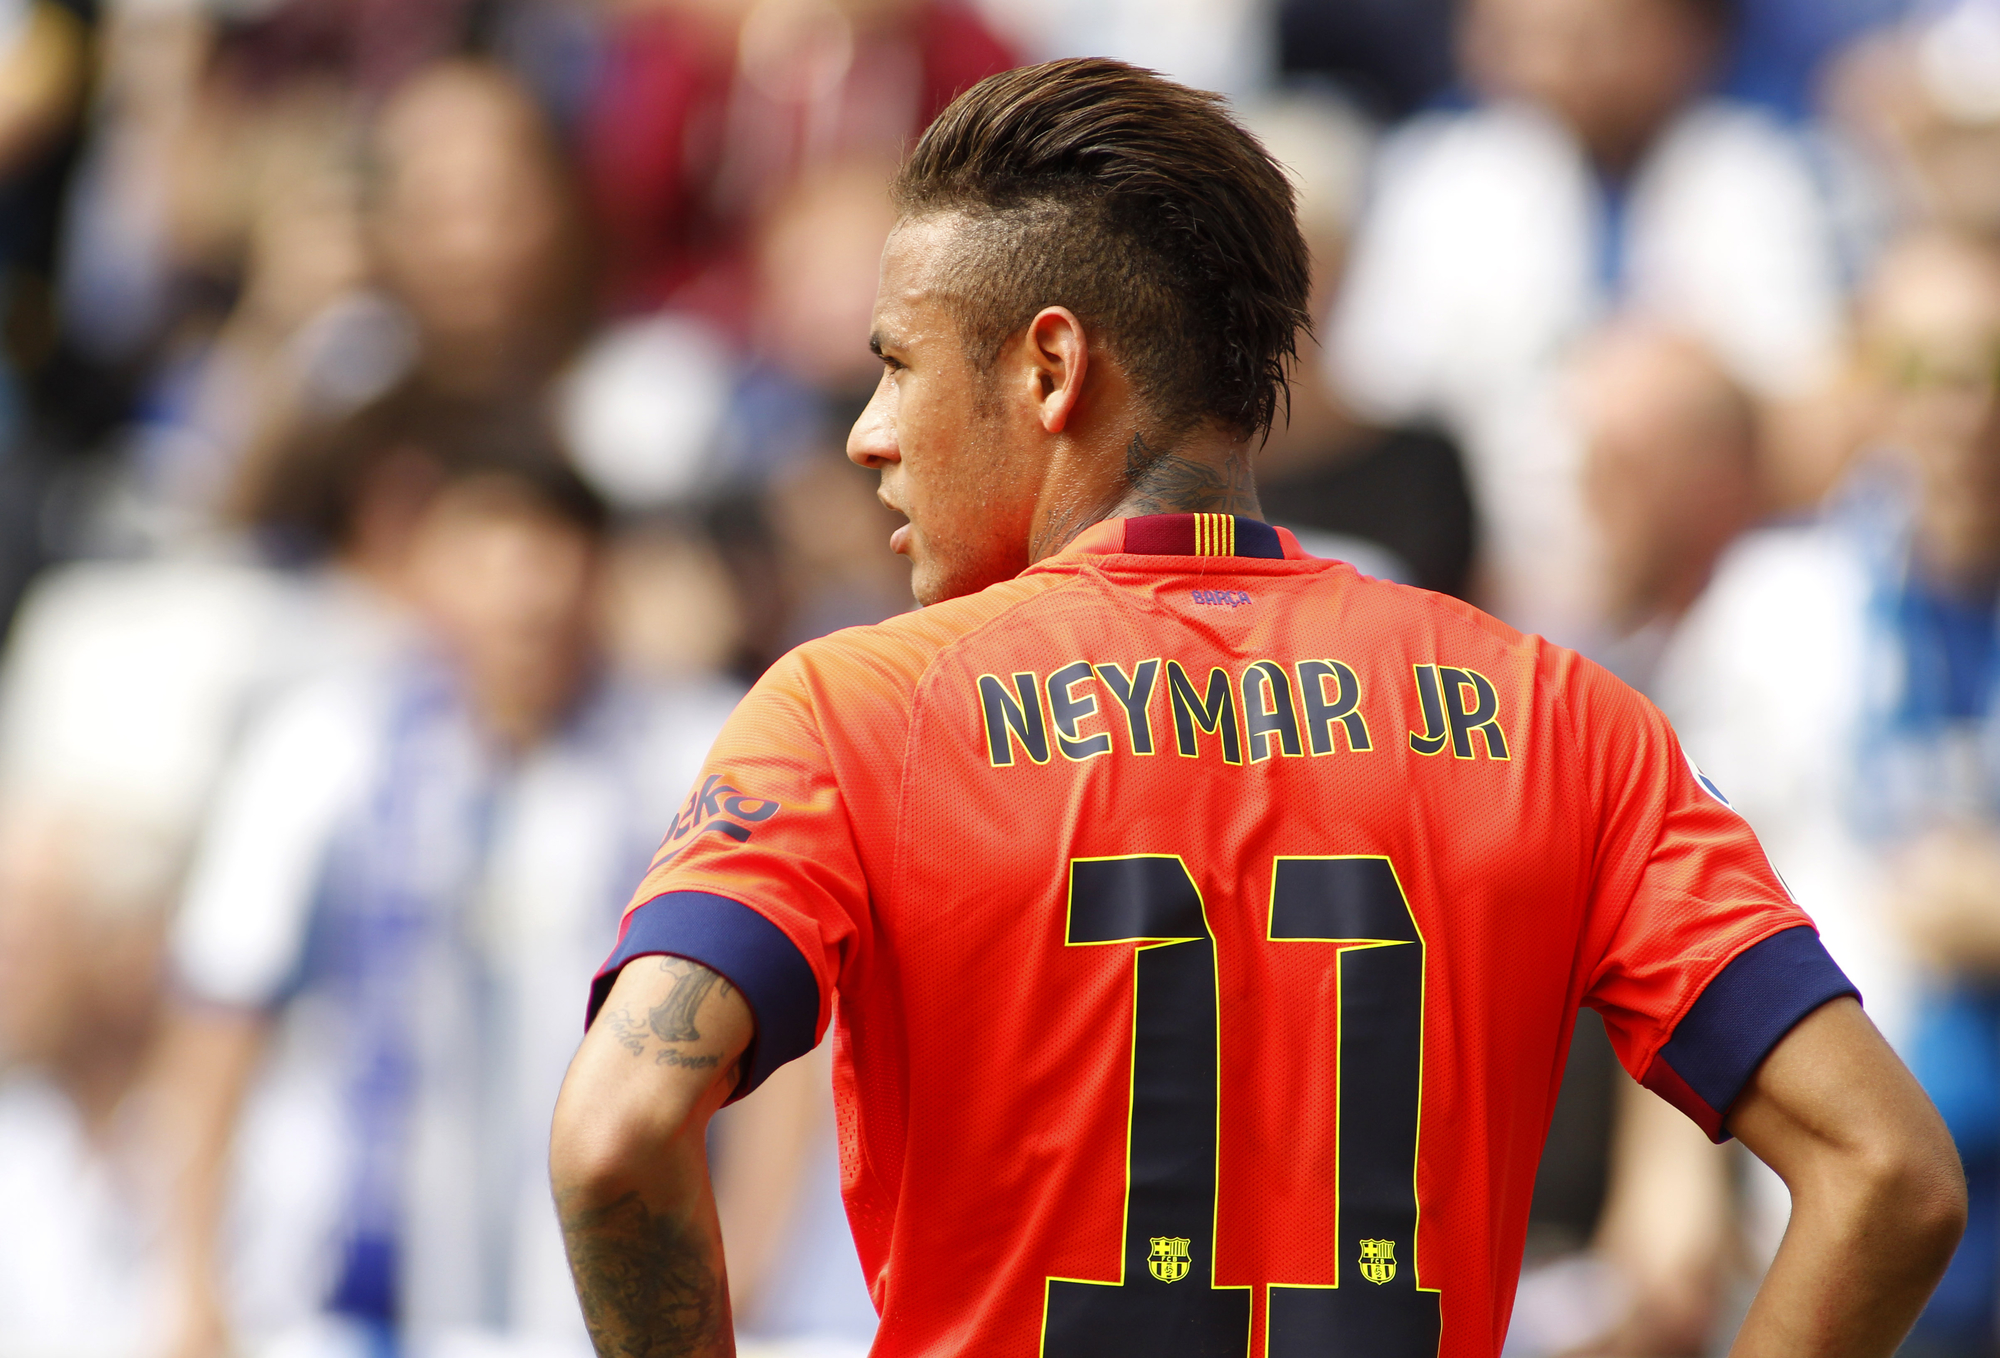 Neymar is 10/1 in the World Cup top scorer odds